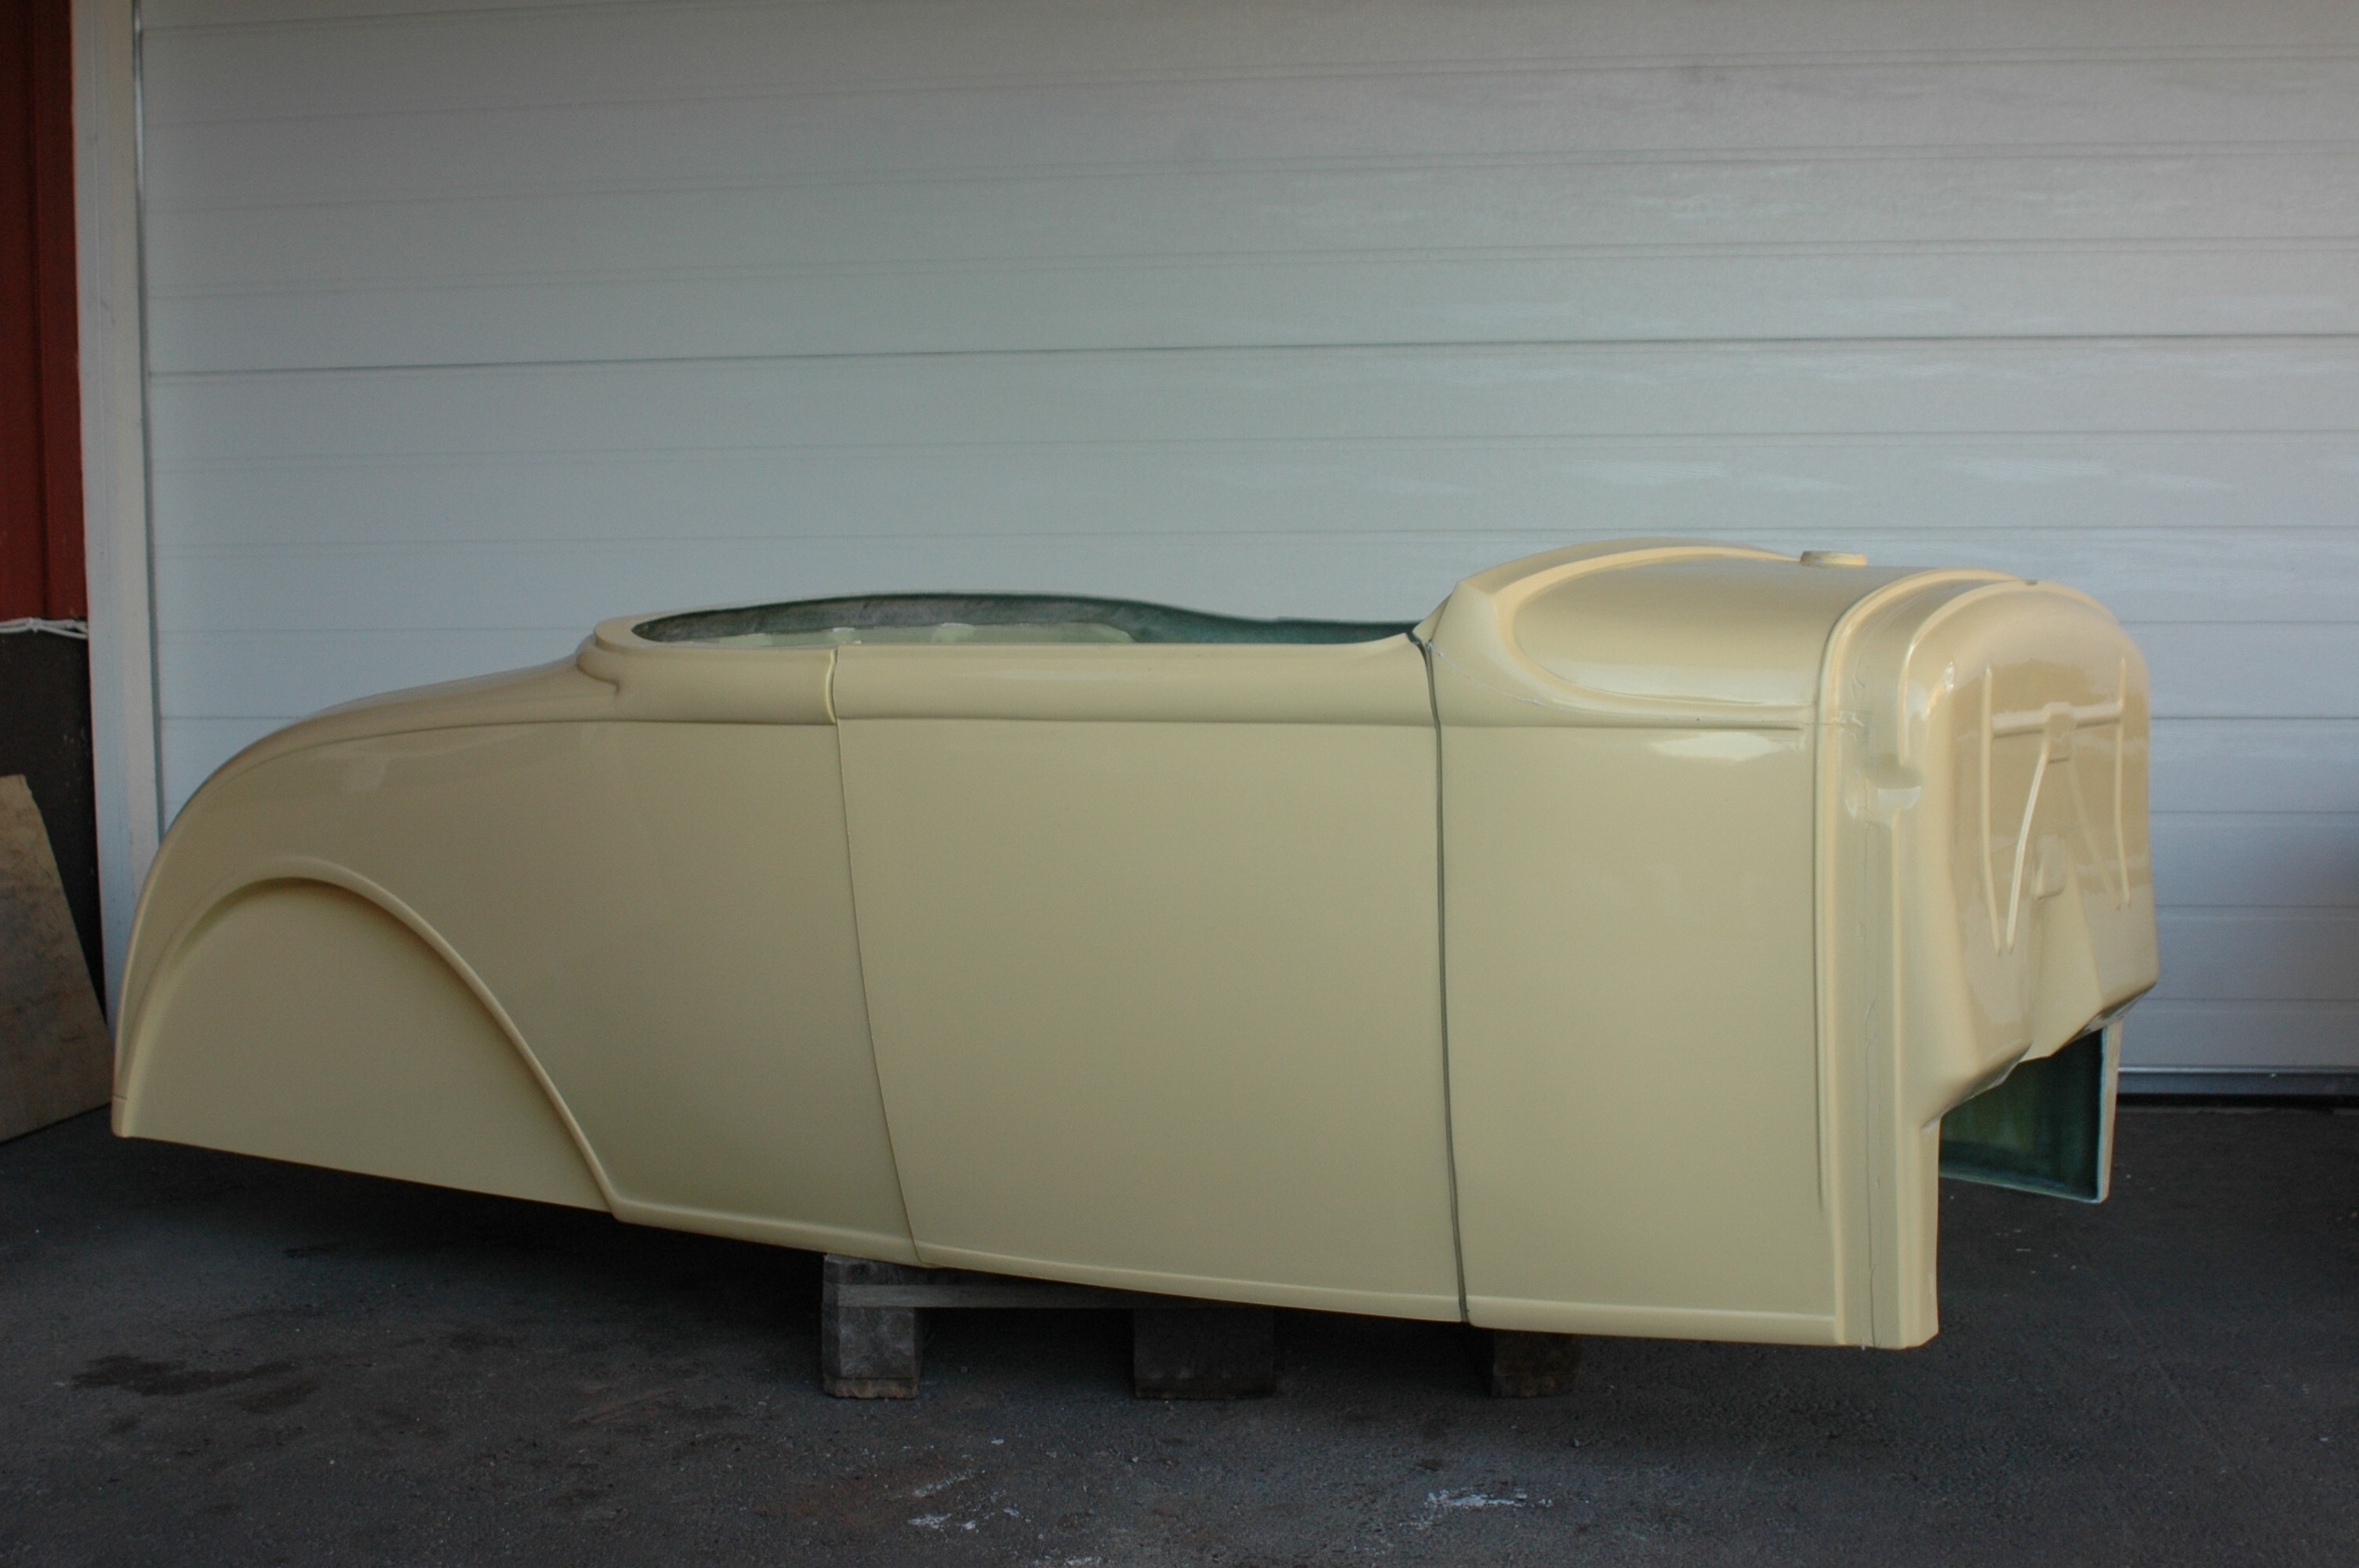 30/31 A ford roadster